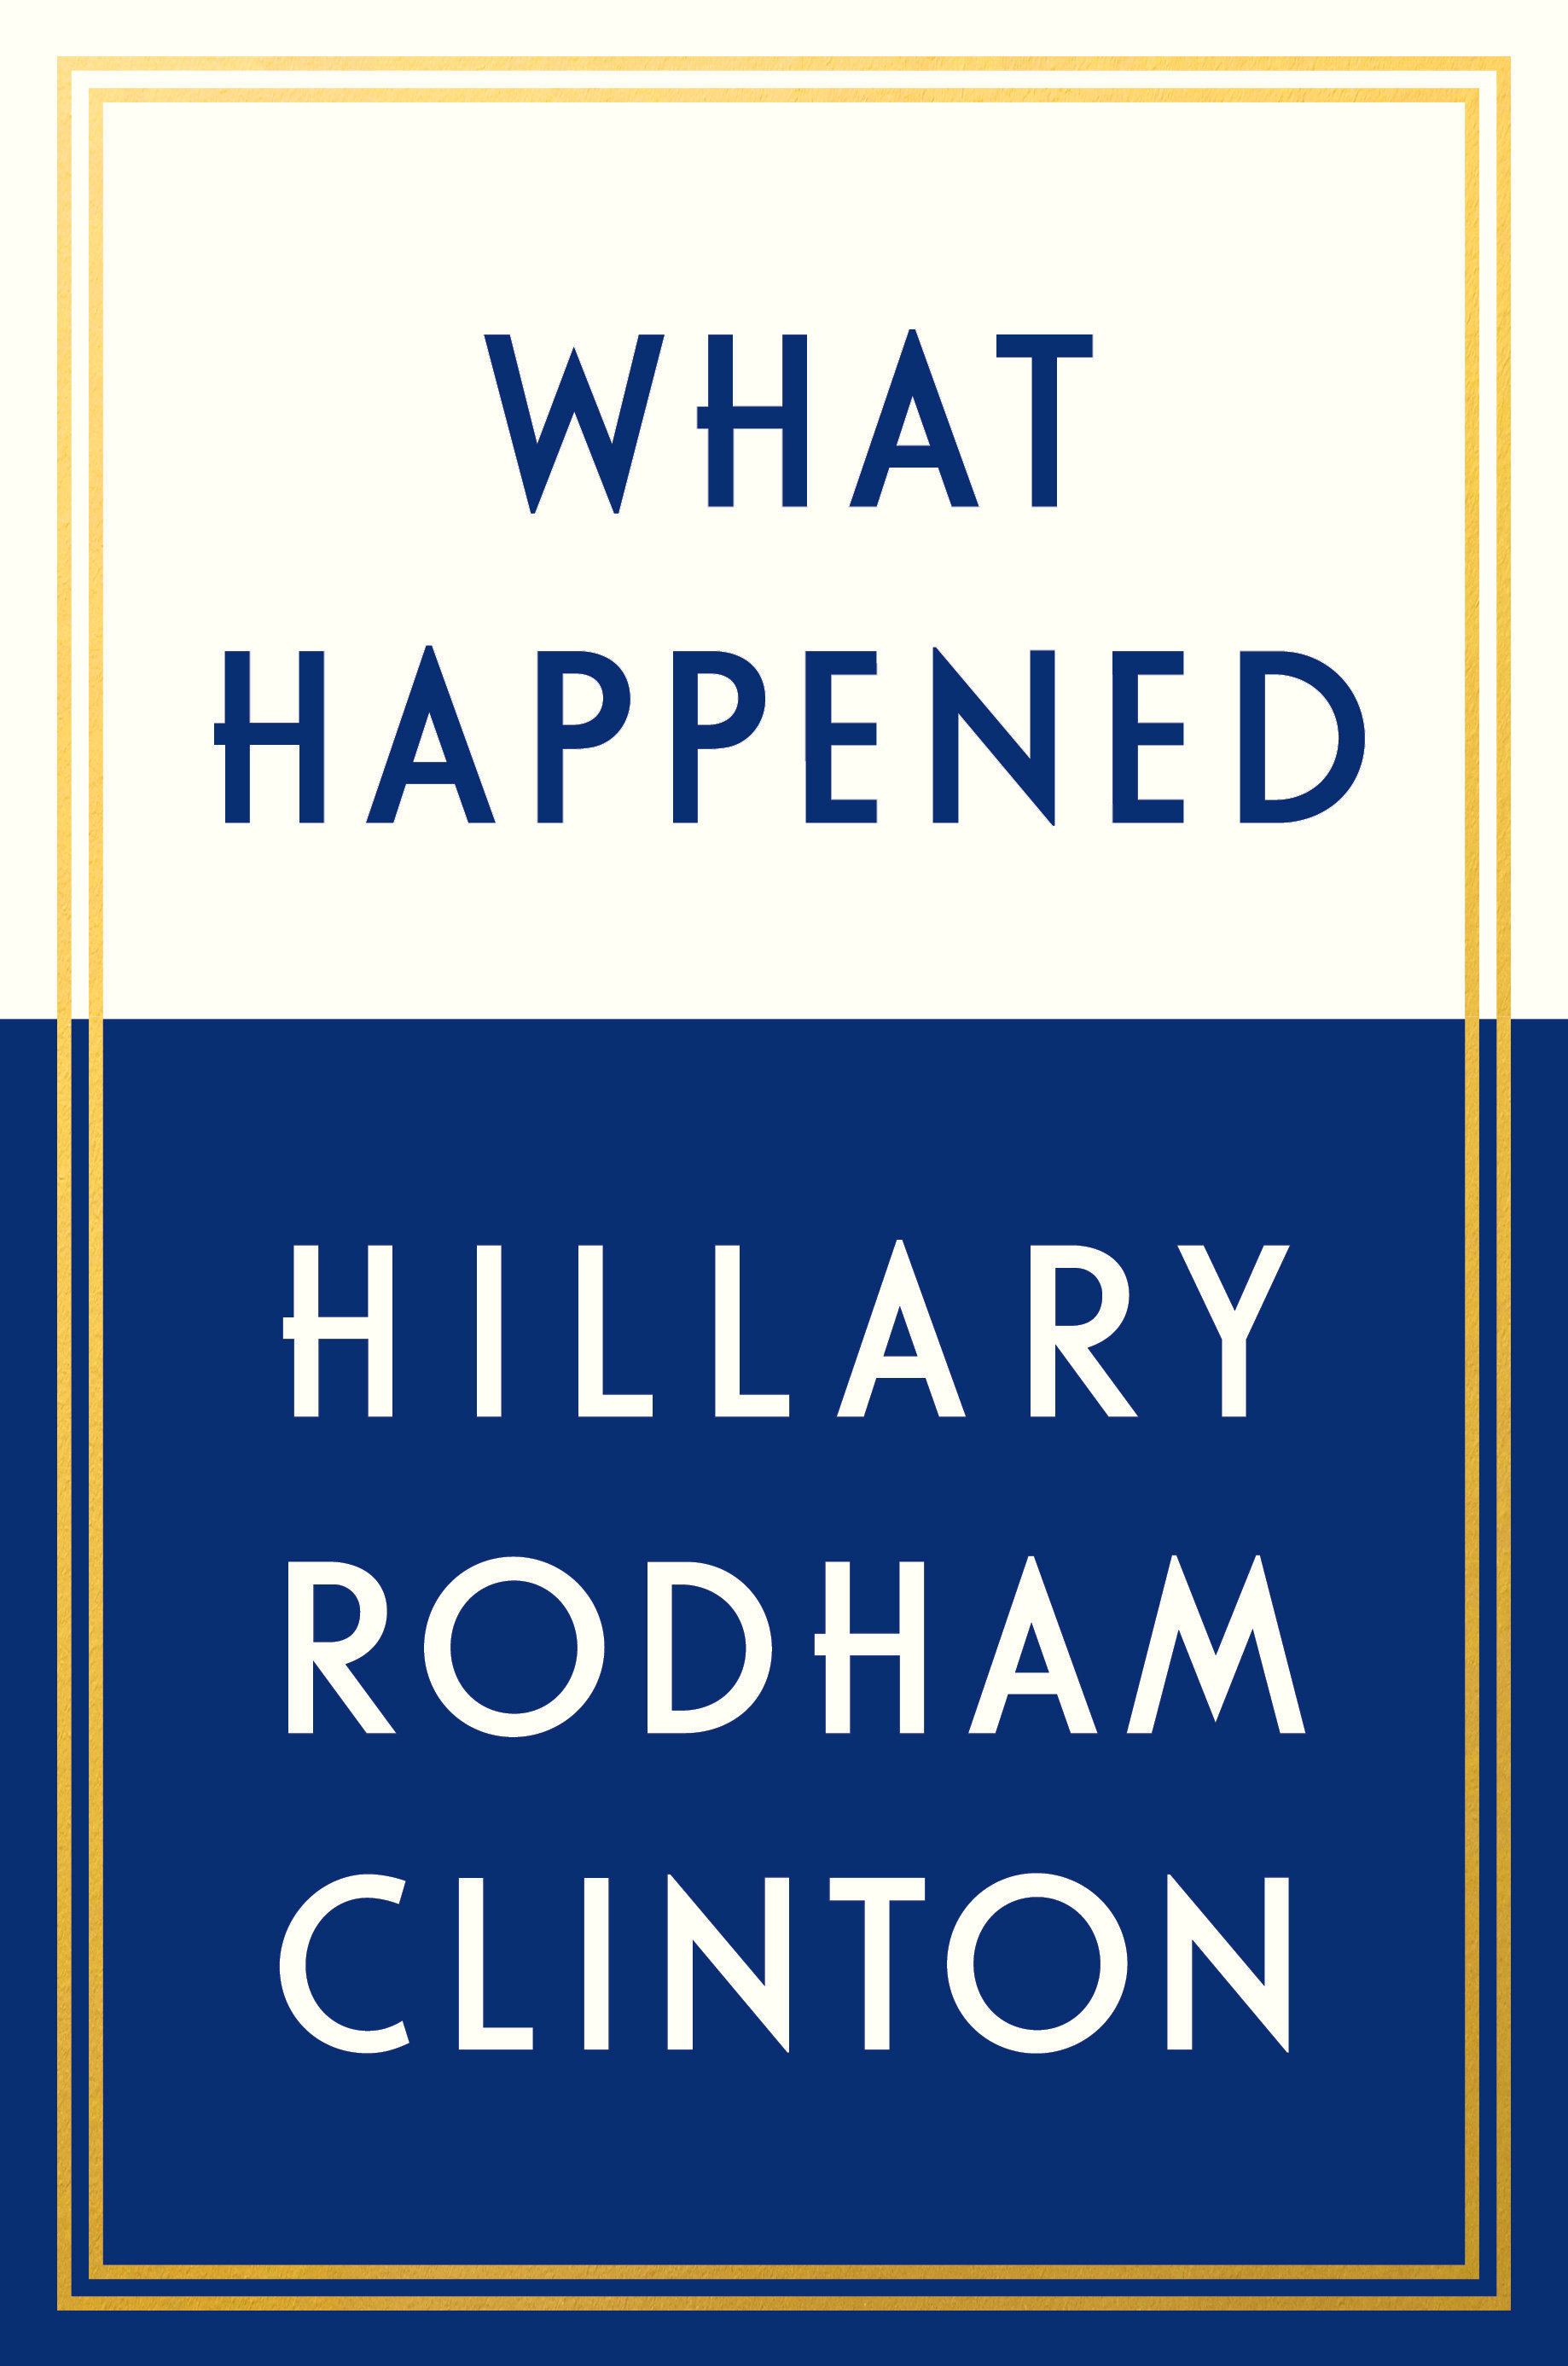 The official book jacket cover for Hillary Clinton's book What Happened is shown in this image released in New York, NY, U.S., July 27, 2017